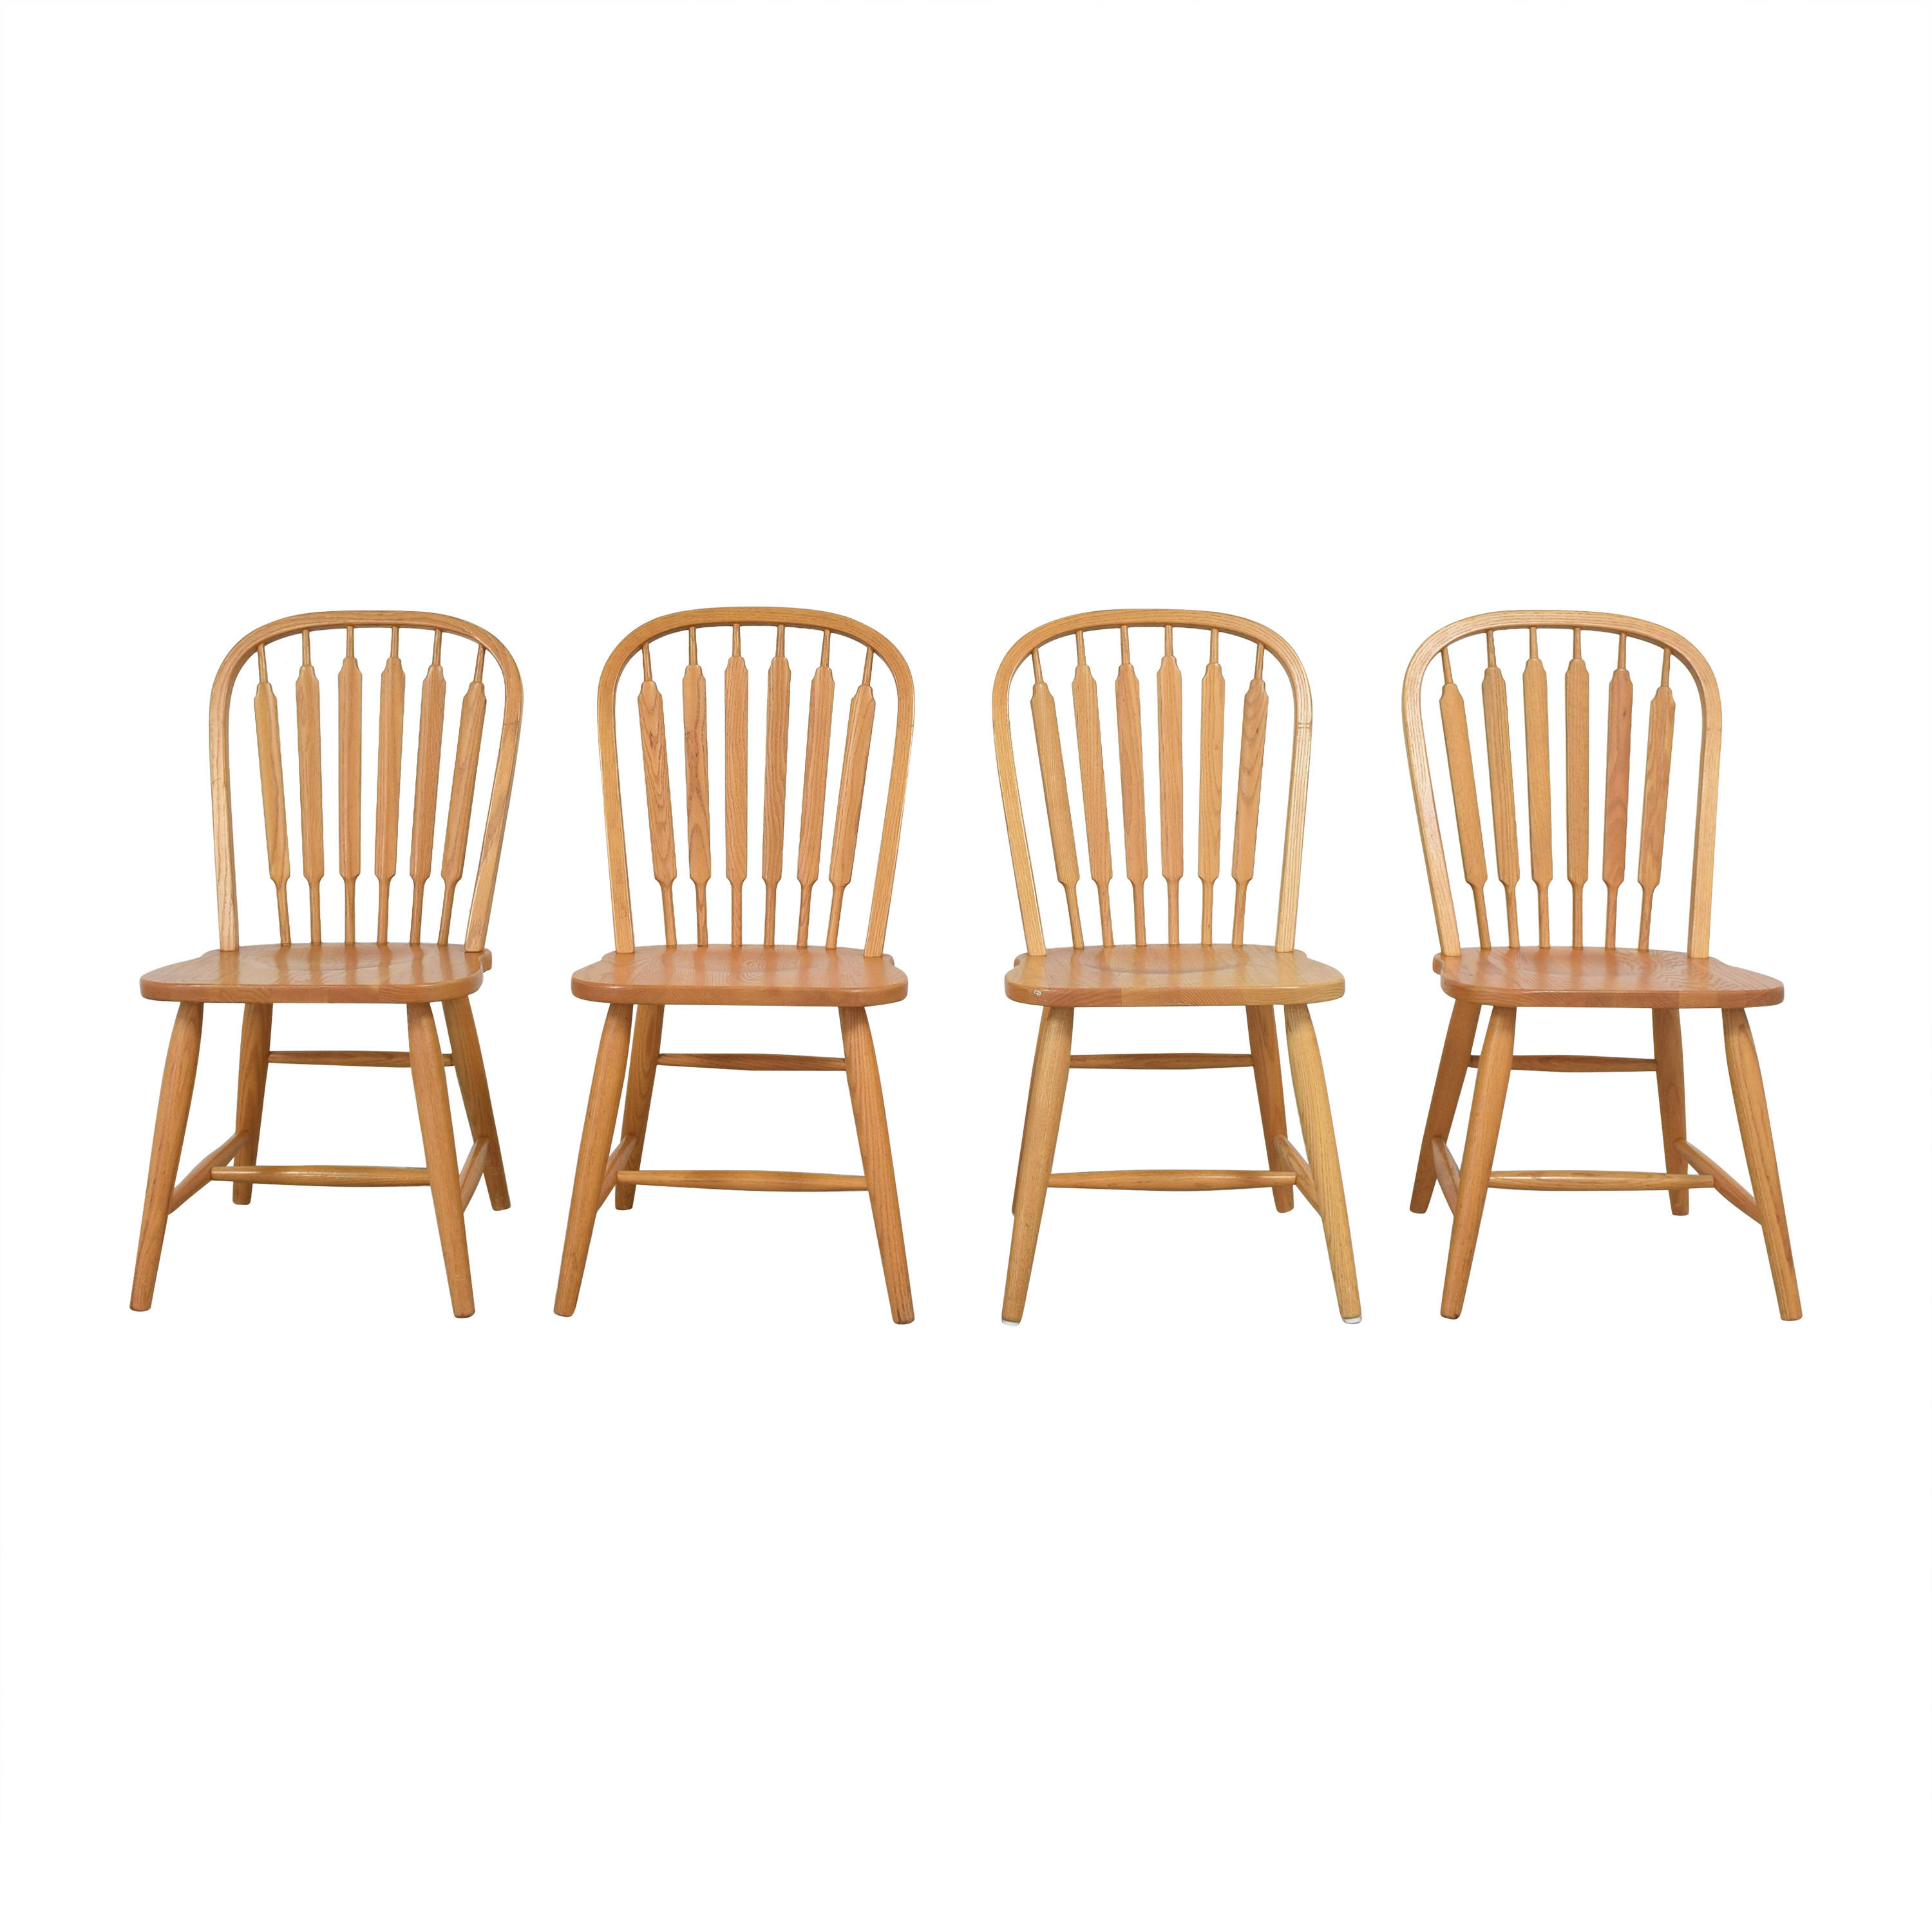 Richardson Brothers Windsor Dining Chairs / Dining Chairs